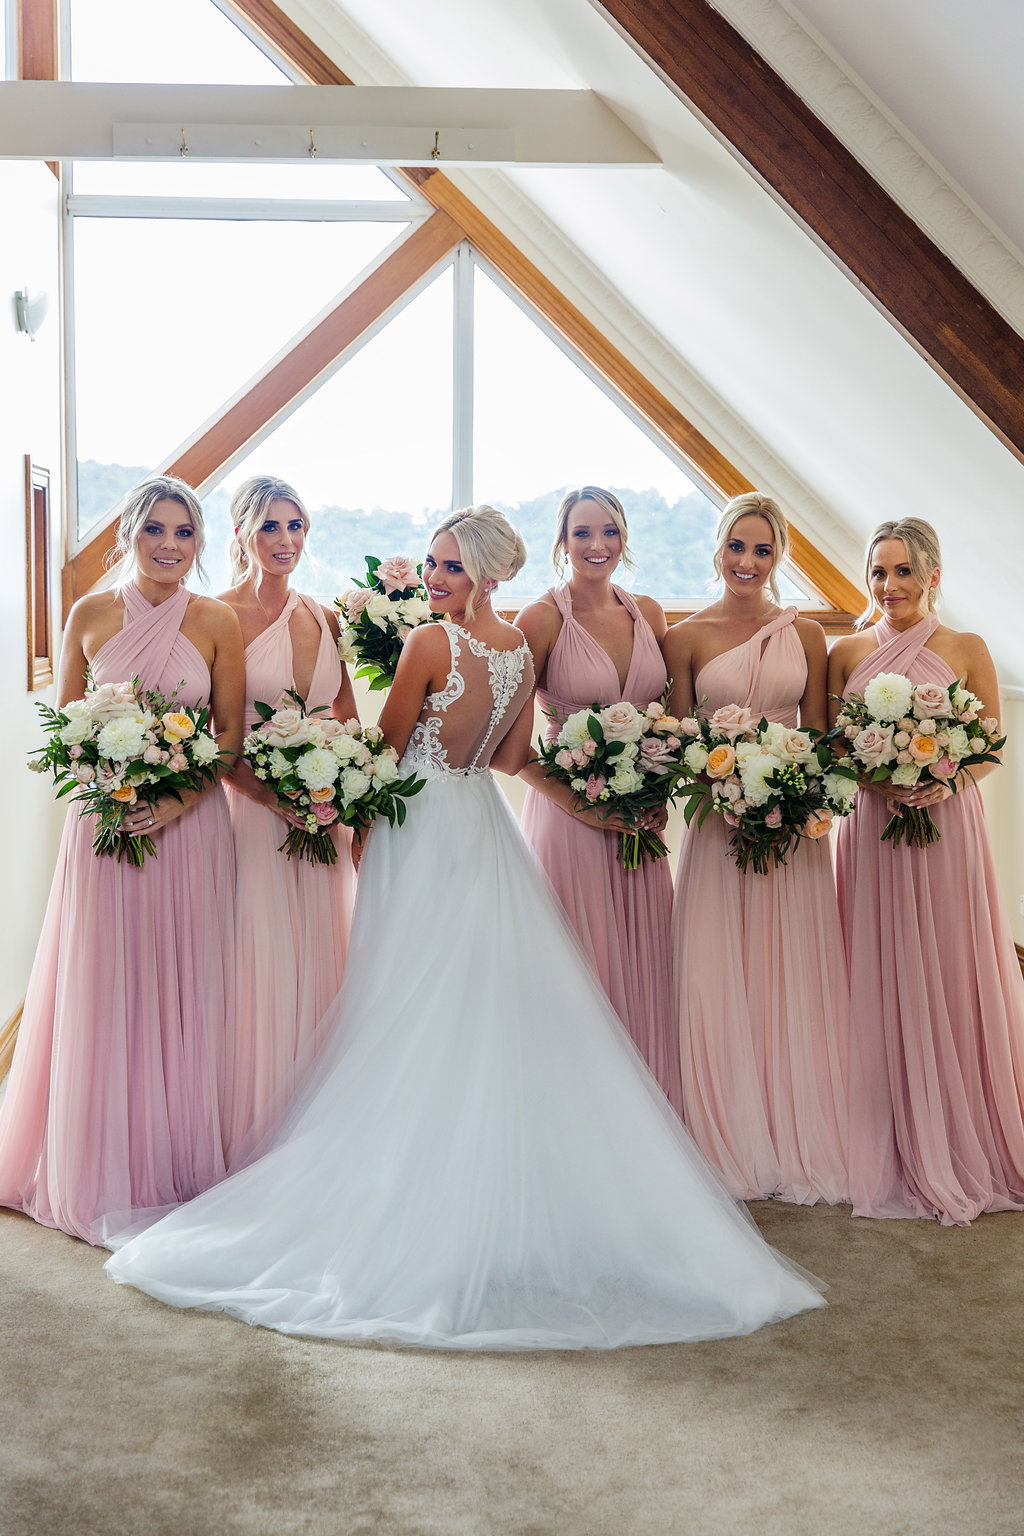 Pastel wedding bouquets featuring antique pink and peach tones